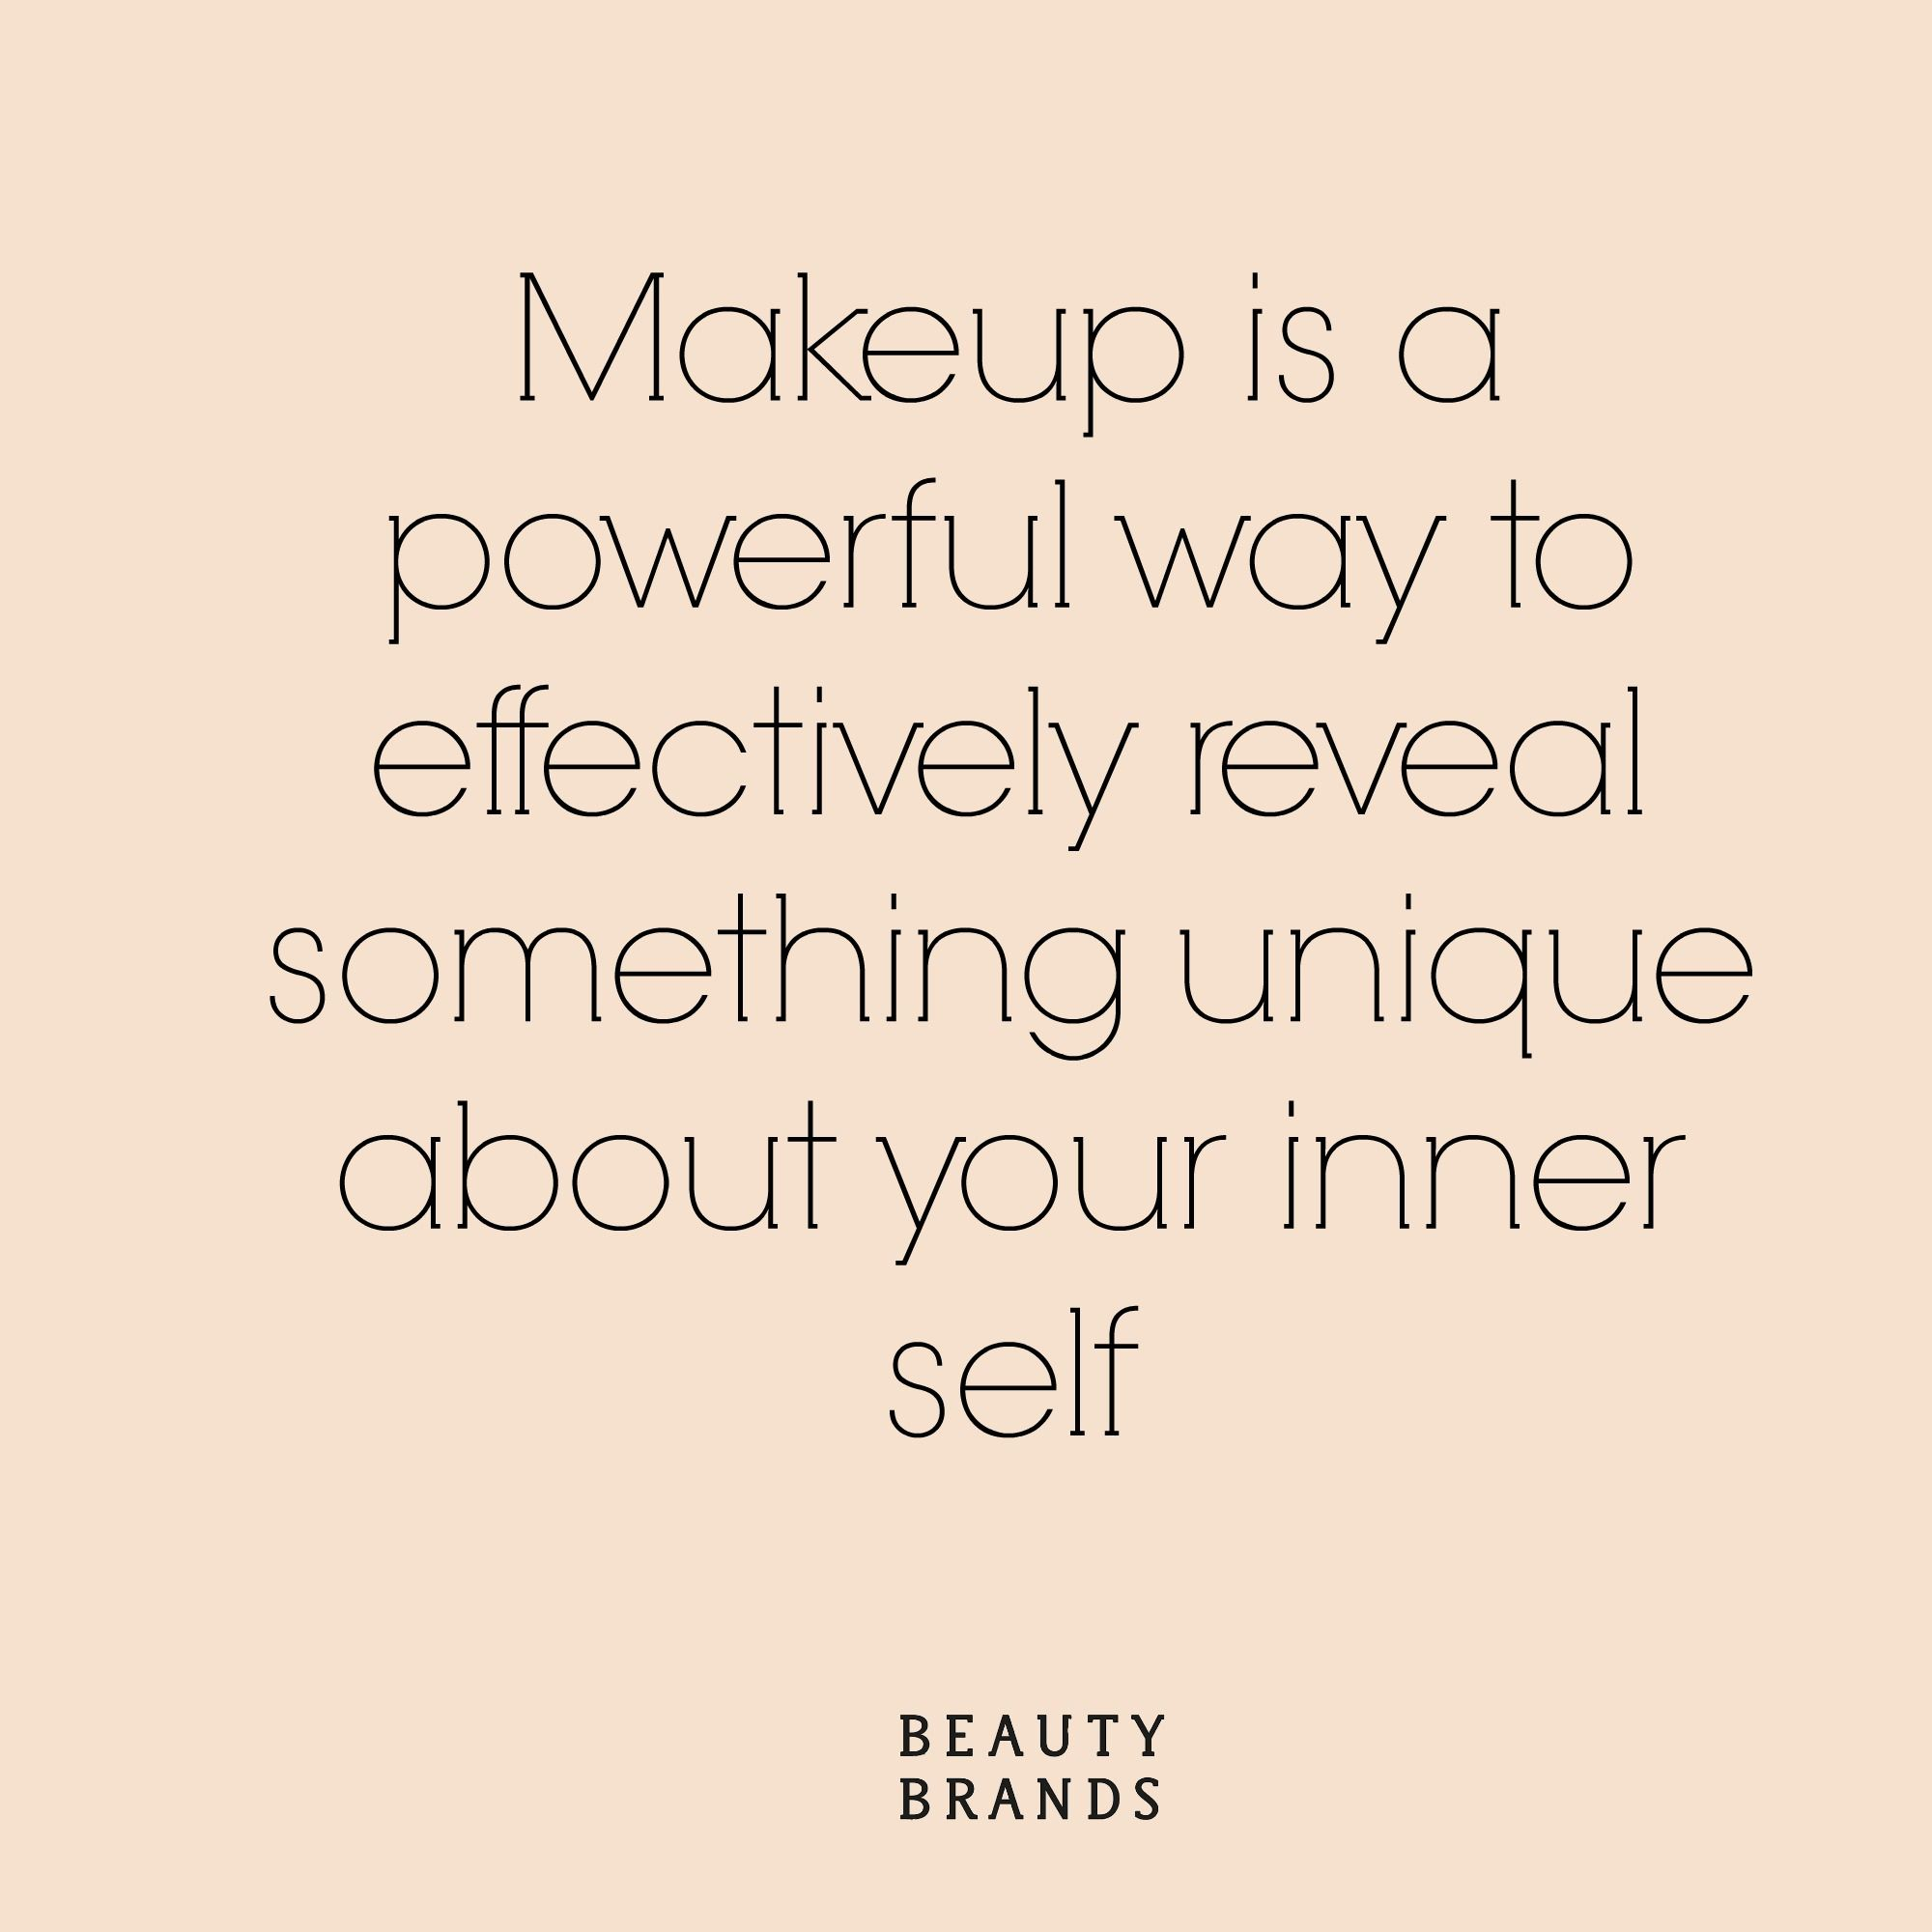 Makeup is a powerful way to effectively reveal something